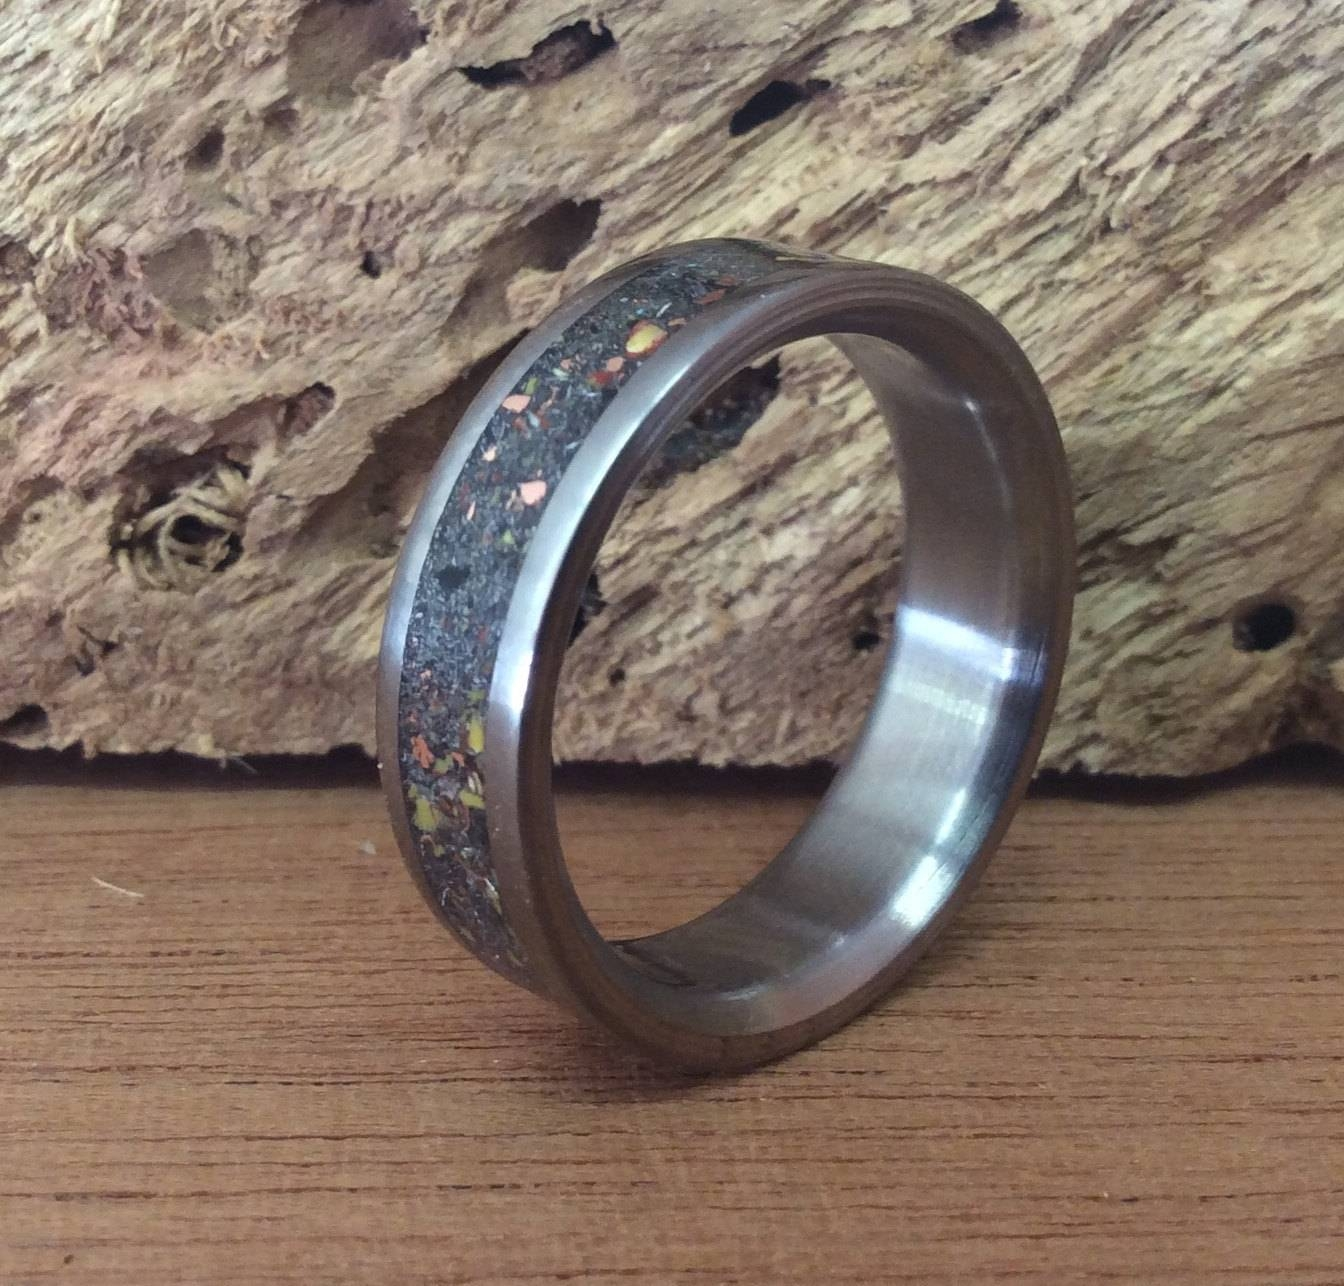 Titanium Ring, Meteorite Ring, Dinosaur Bone Ring, Mens Ring Throughout Handmade Men's Wedding Bands (View 13 of 15)